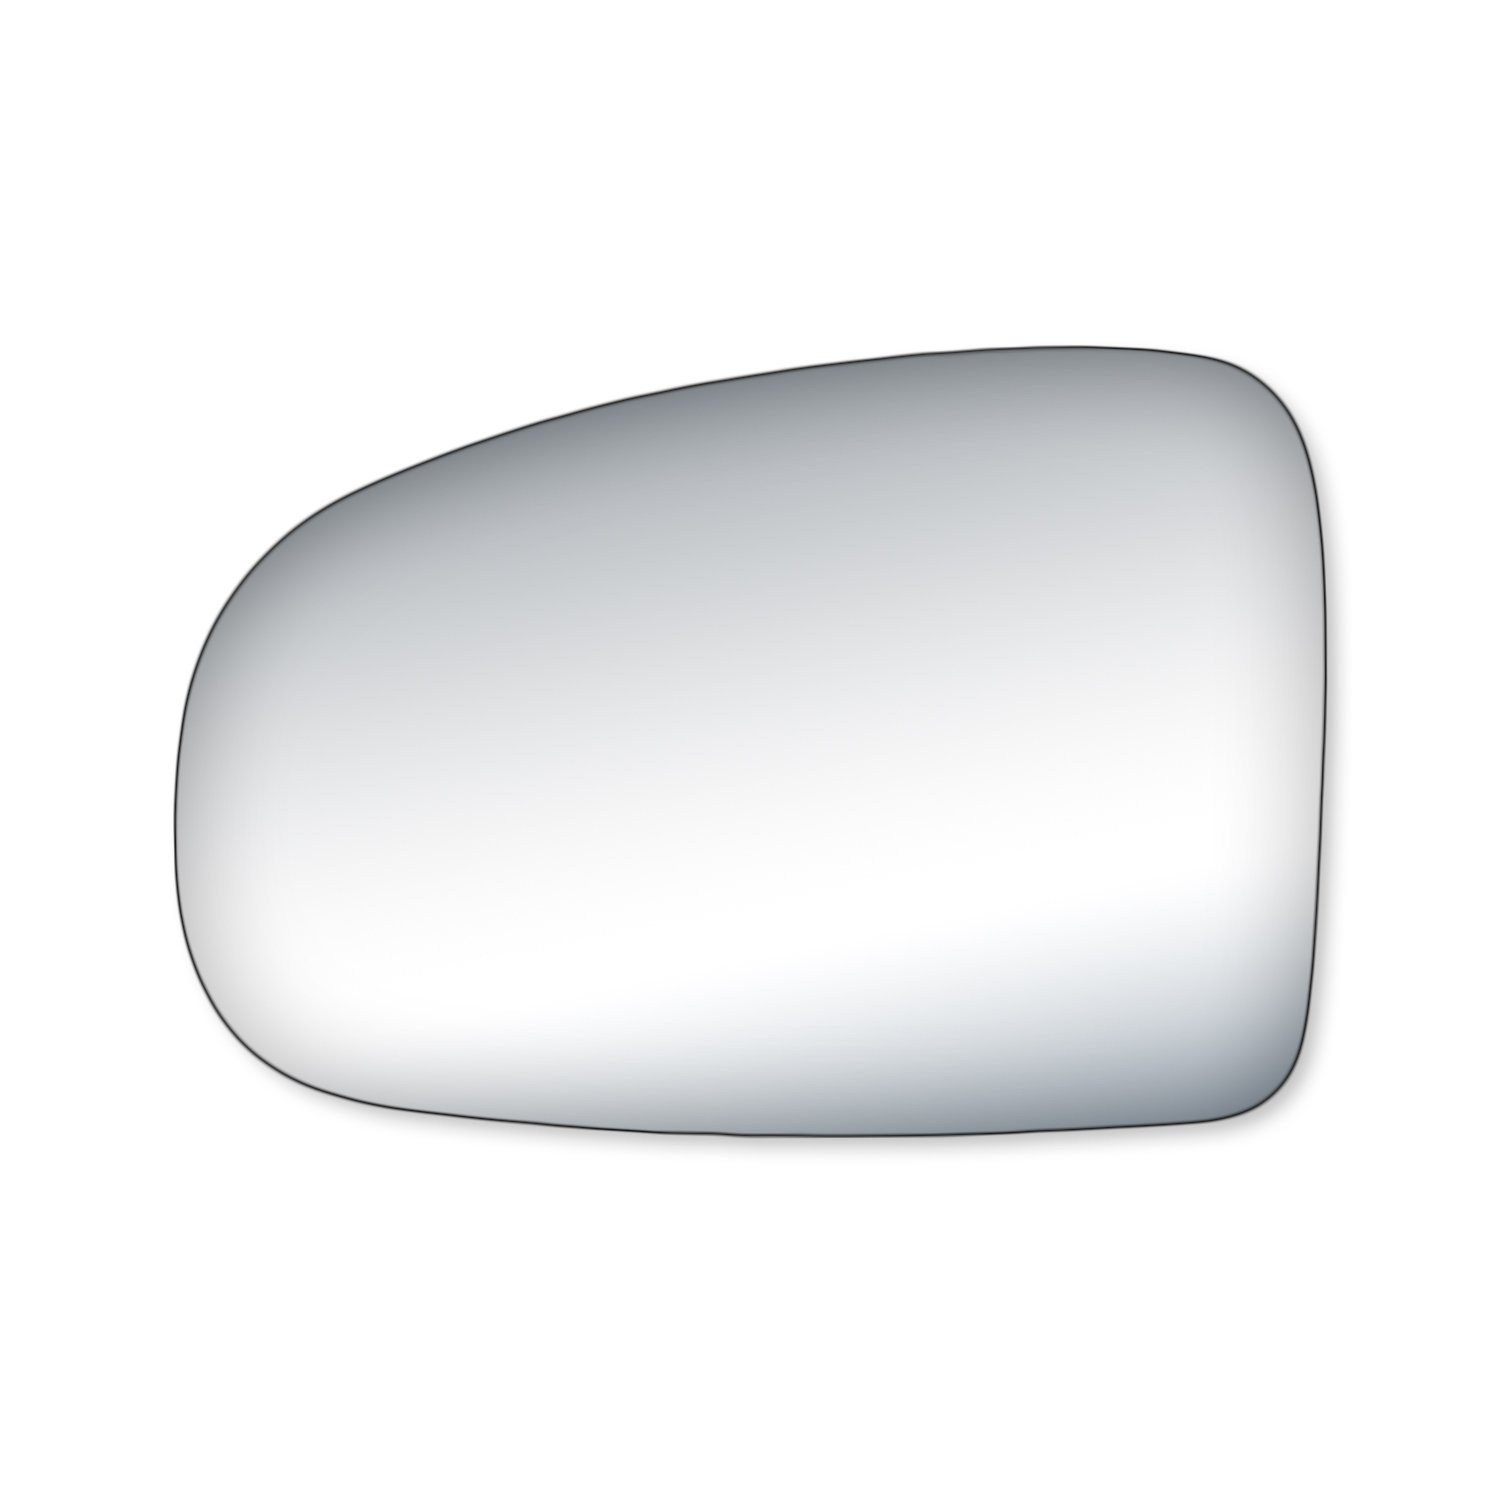 Fit System 90227 Passenger Side Replacement Glass